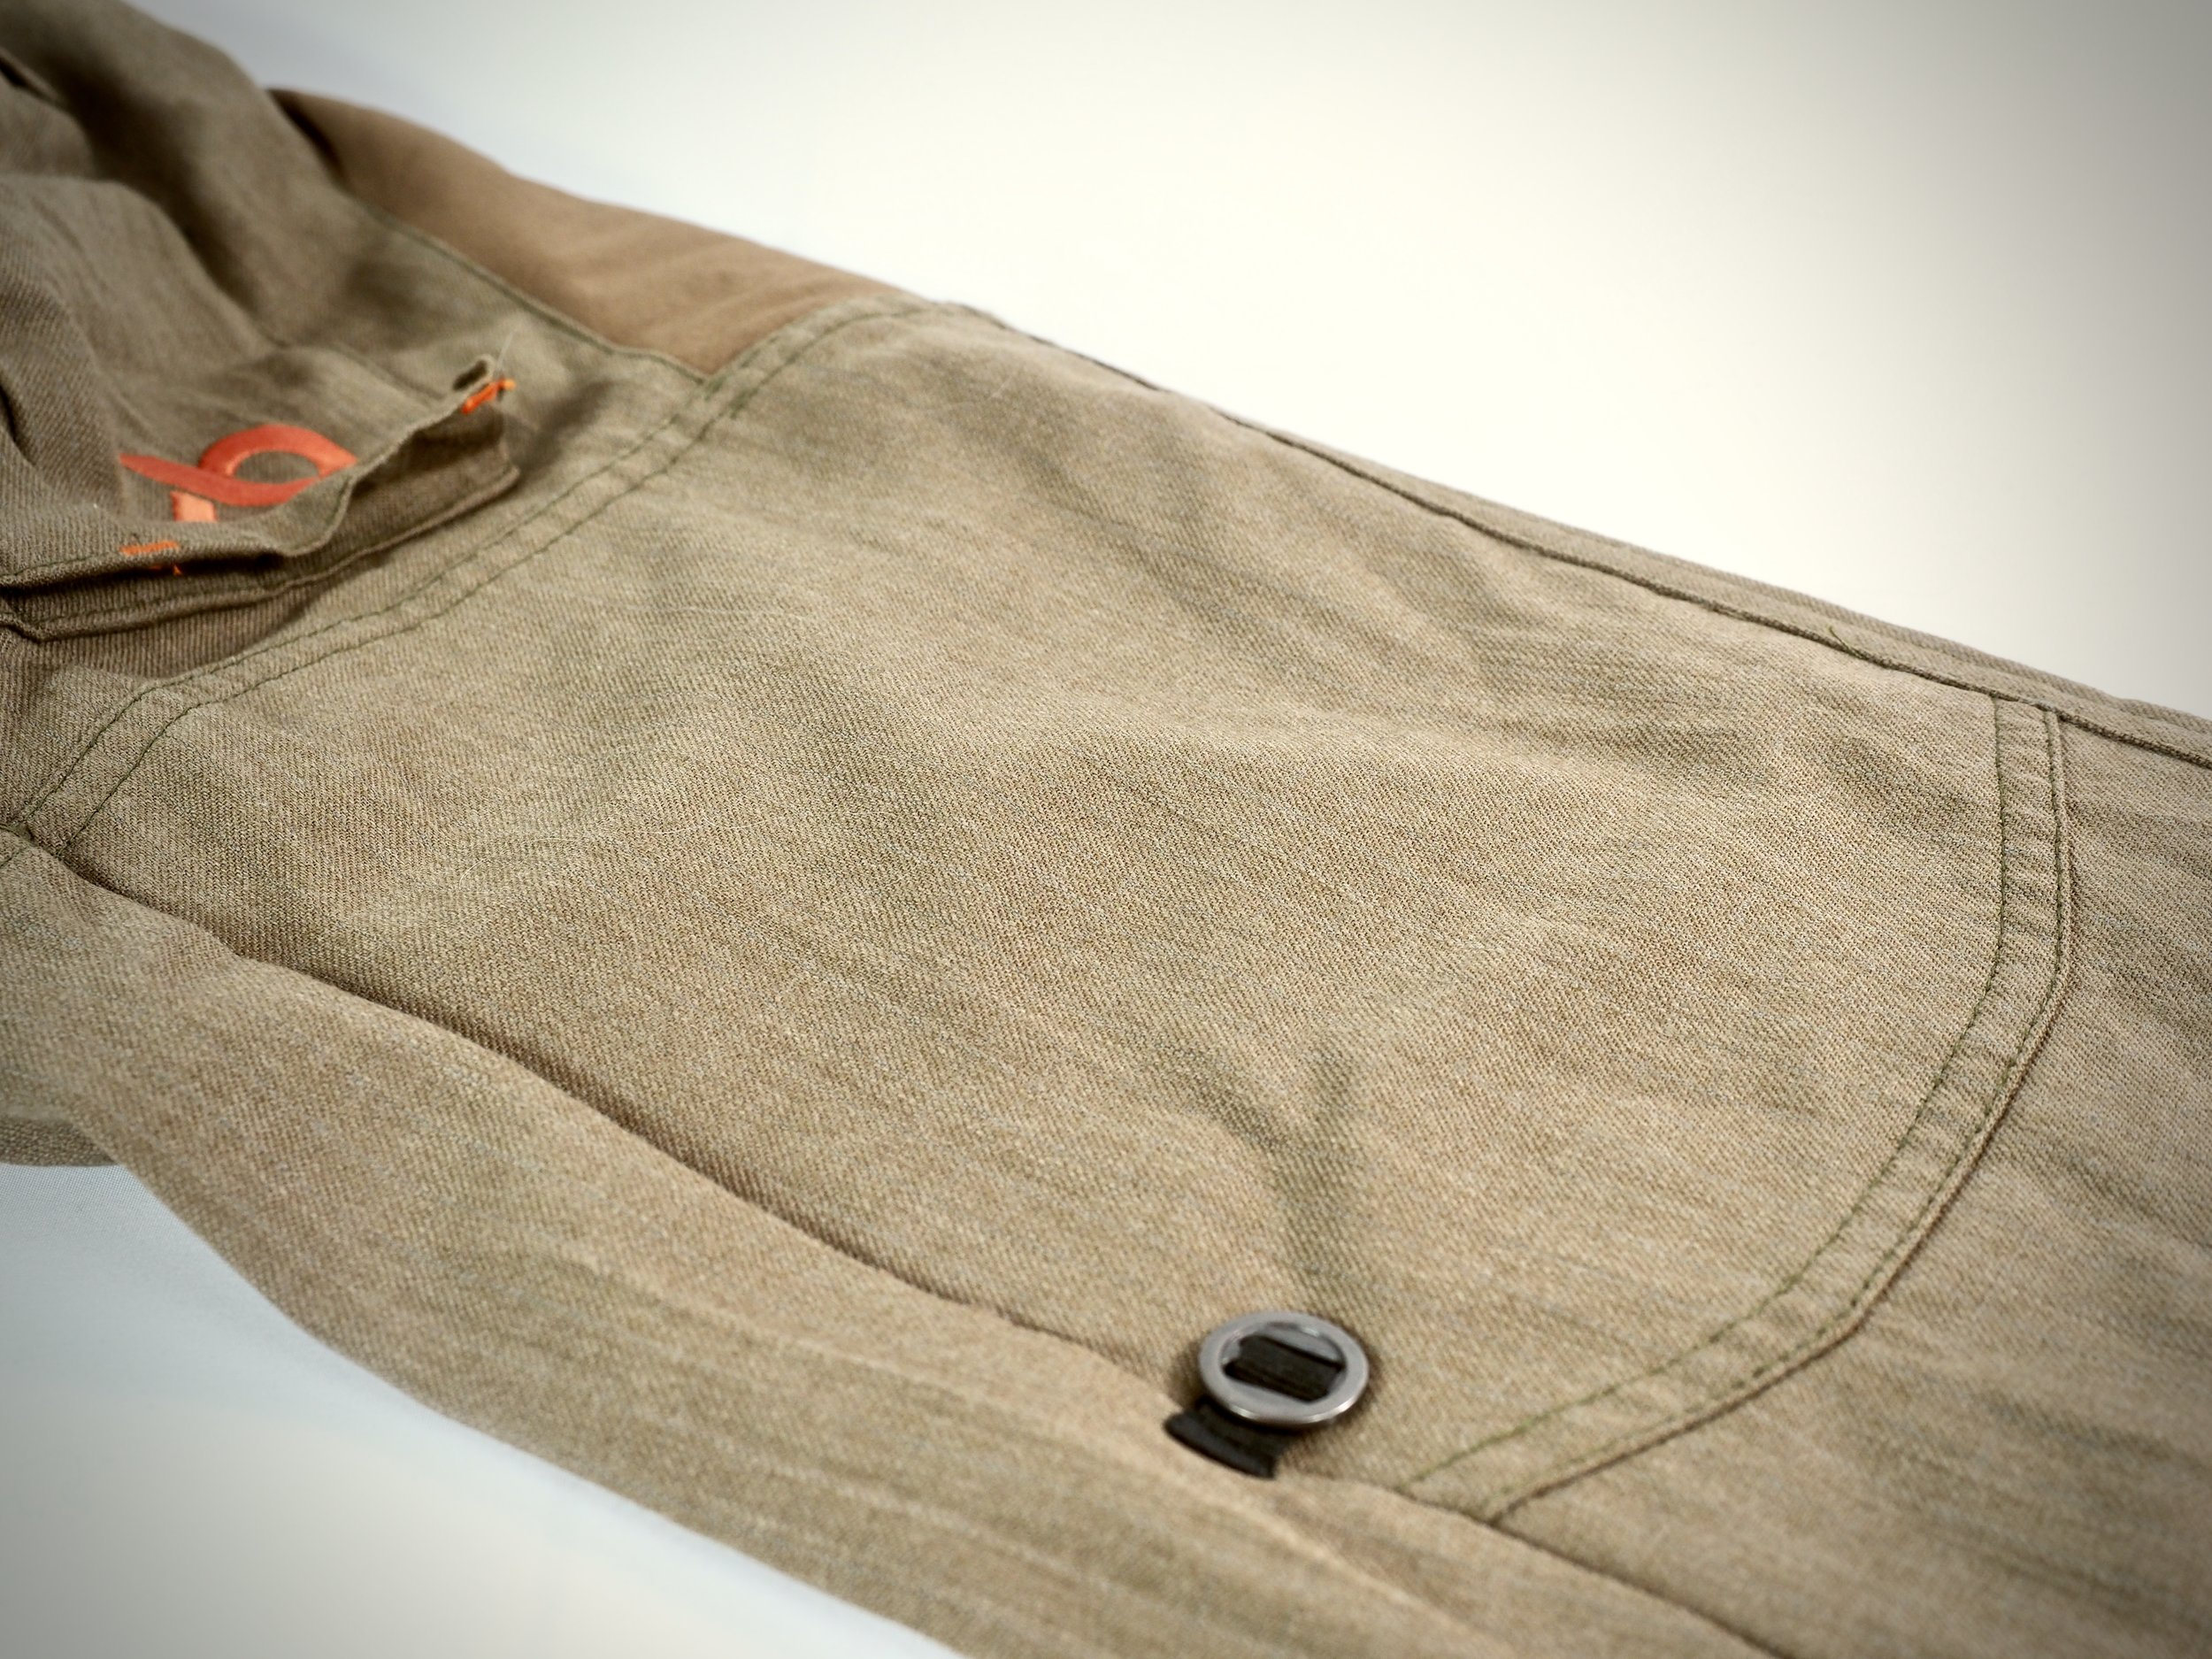 The button shown here is used to secure the pants when rolled up for crossing streams or cooling off. There is a tab on the inside it attaches to (see above photo).